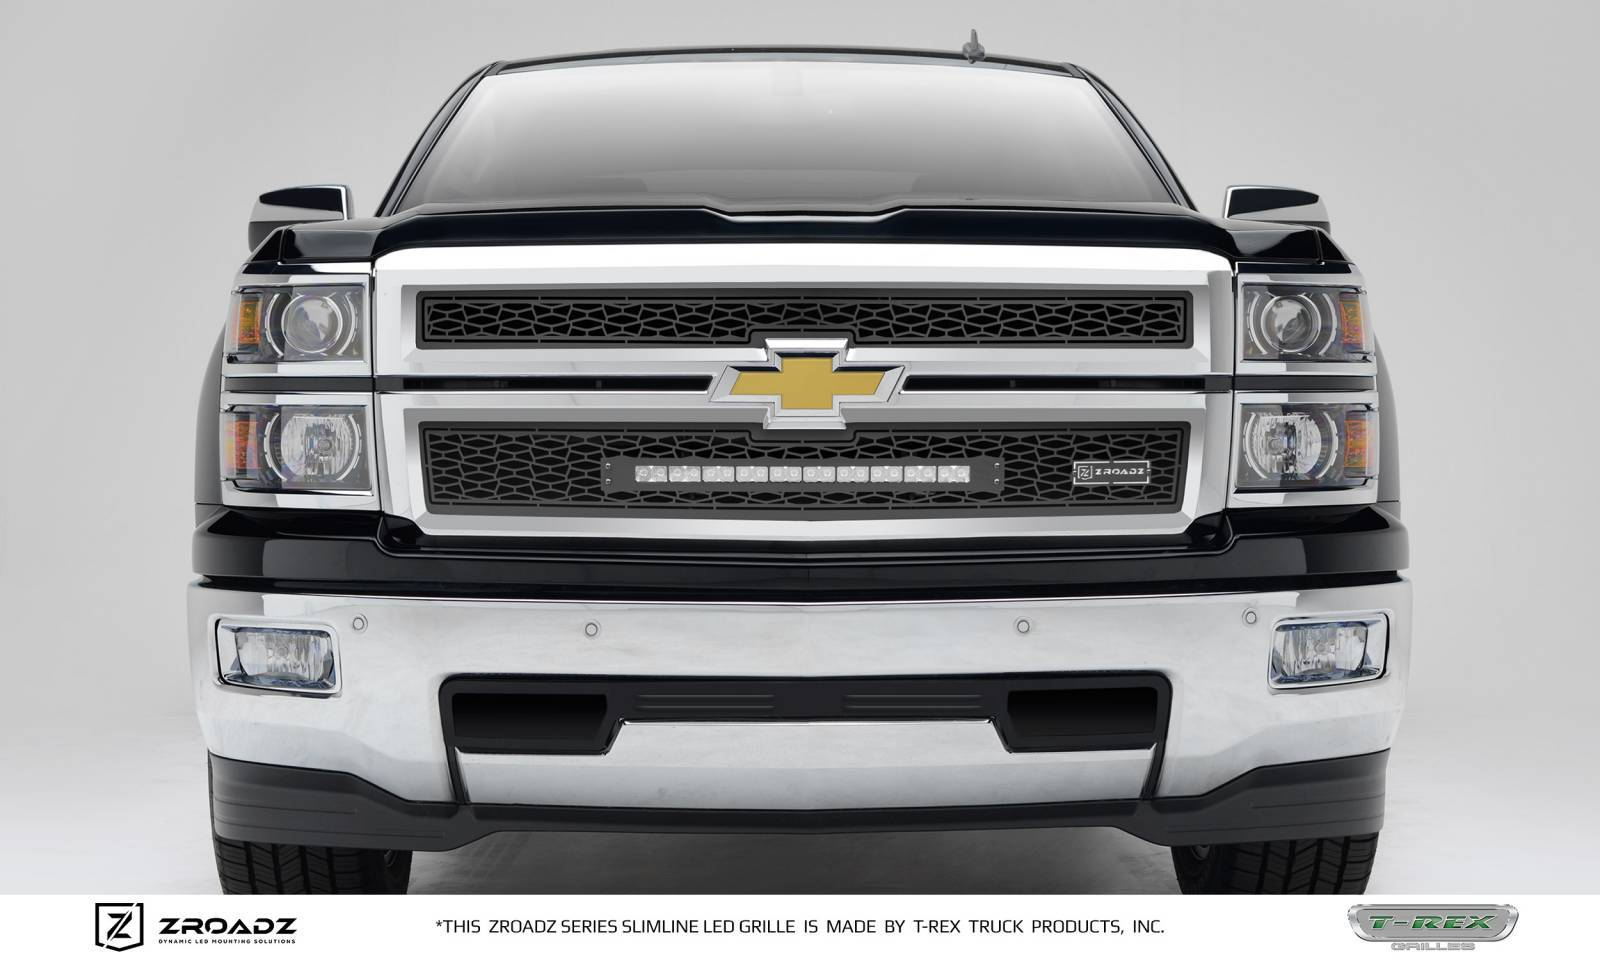 T-REX Grilles - 2014-2015 Chevrolet Silverado 1500 Main Grille, Including (1) 20 Inch ZROADZ LED Straight Single Row Slim Light Bar - Z311211